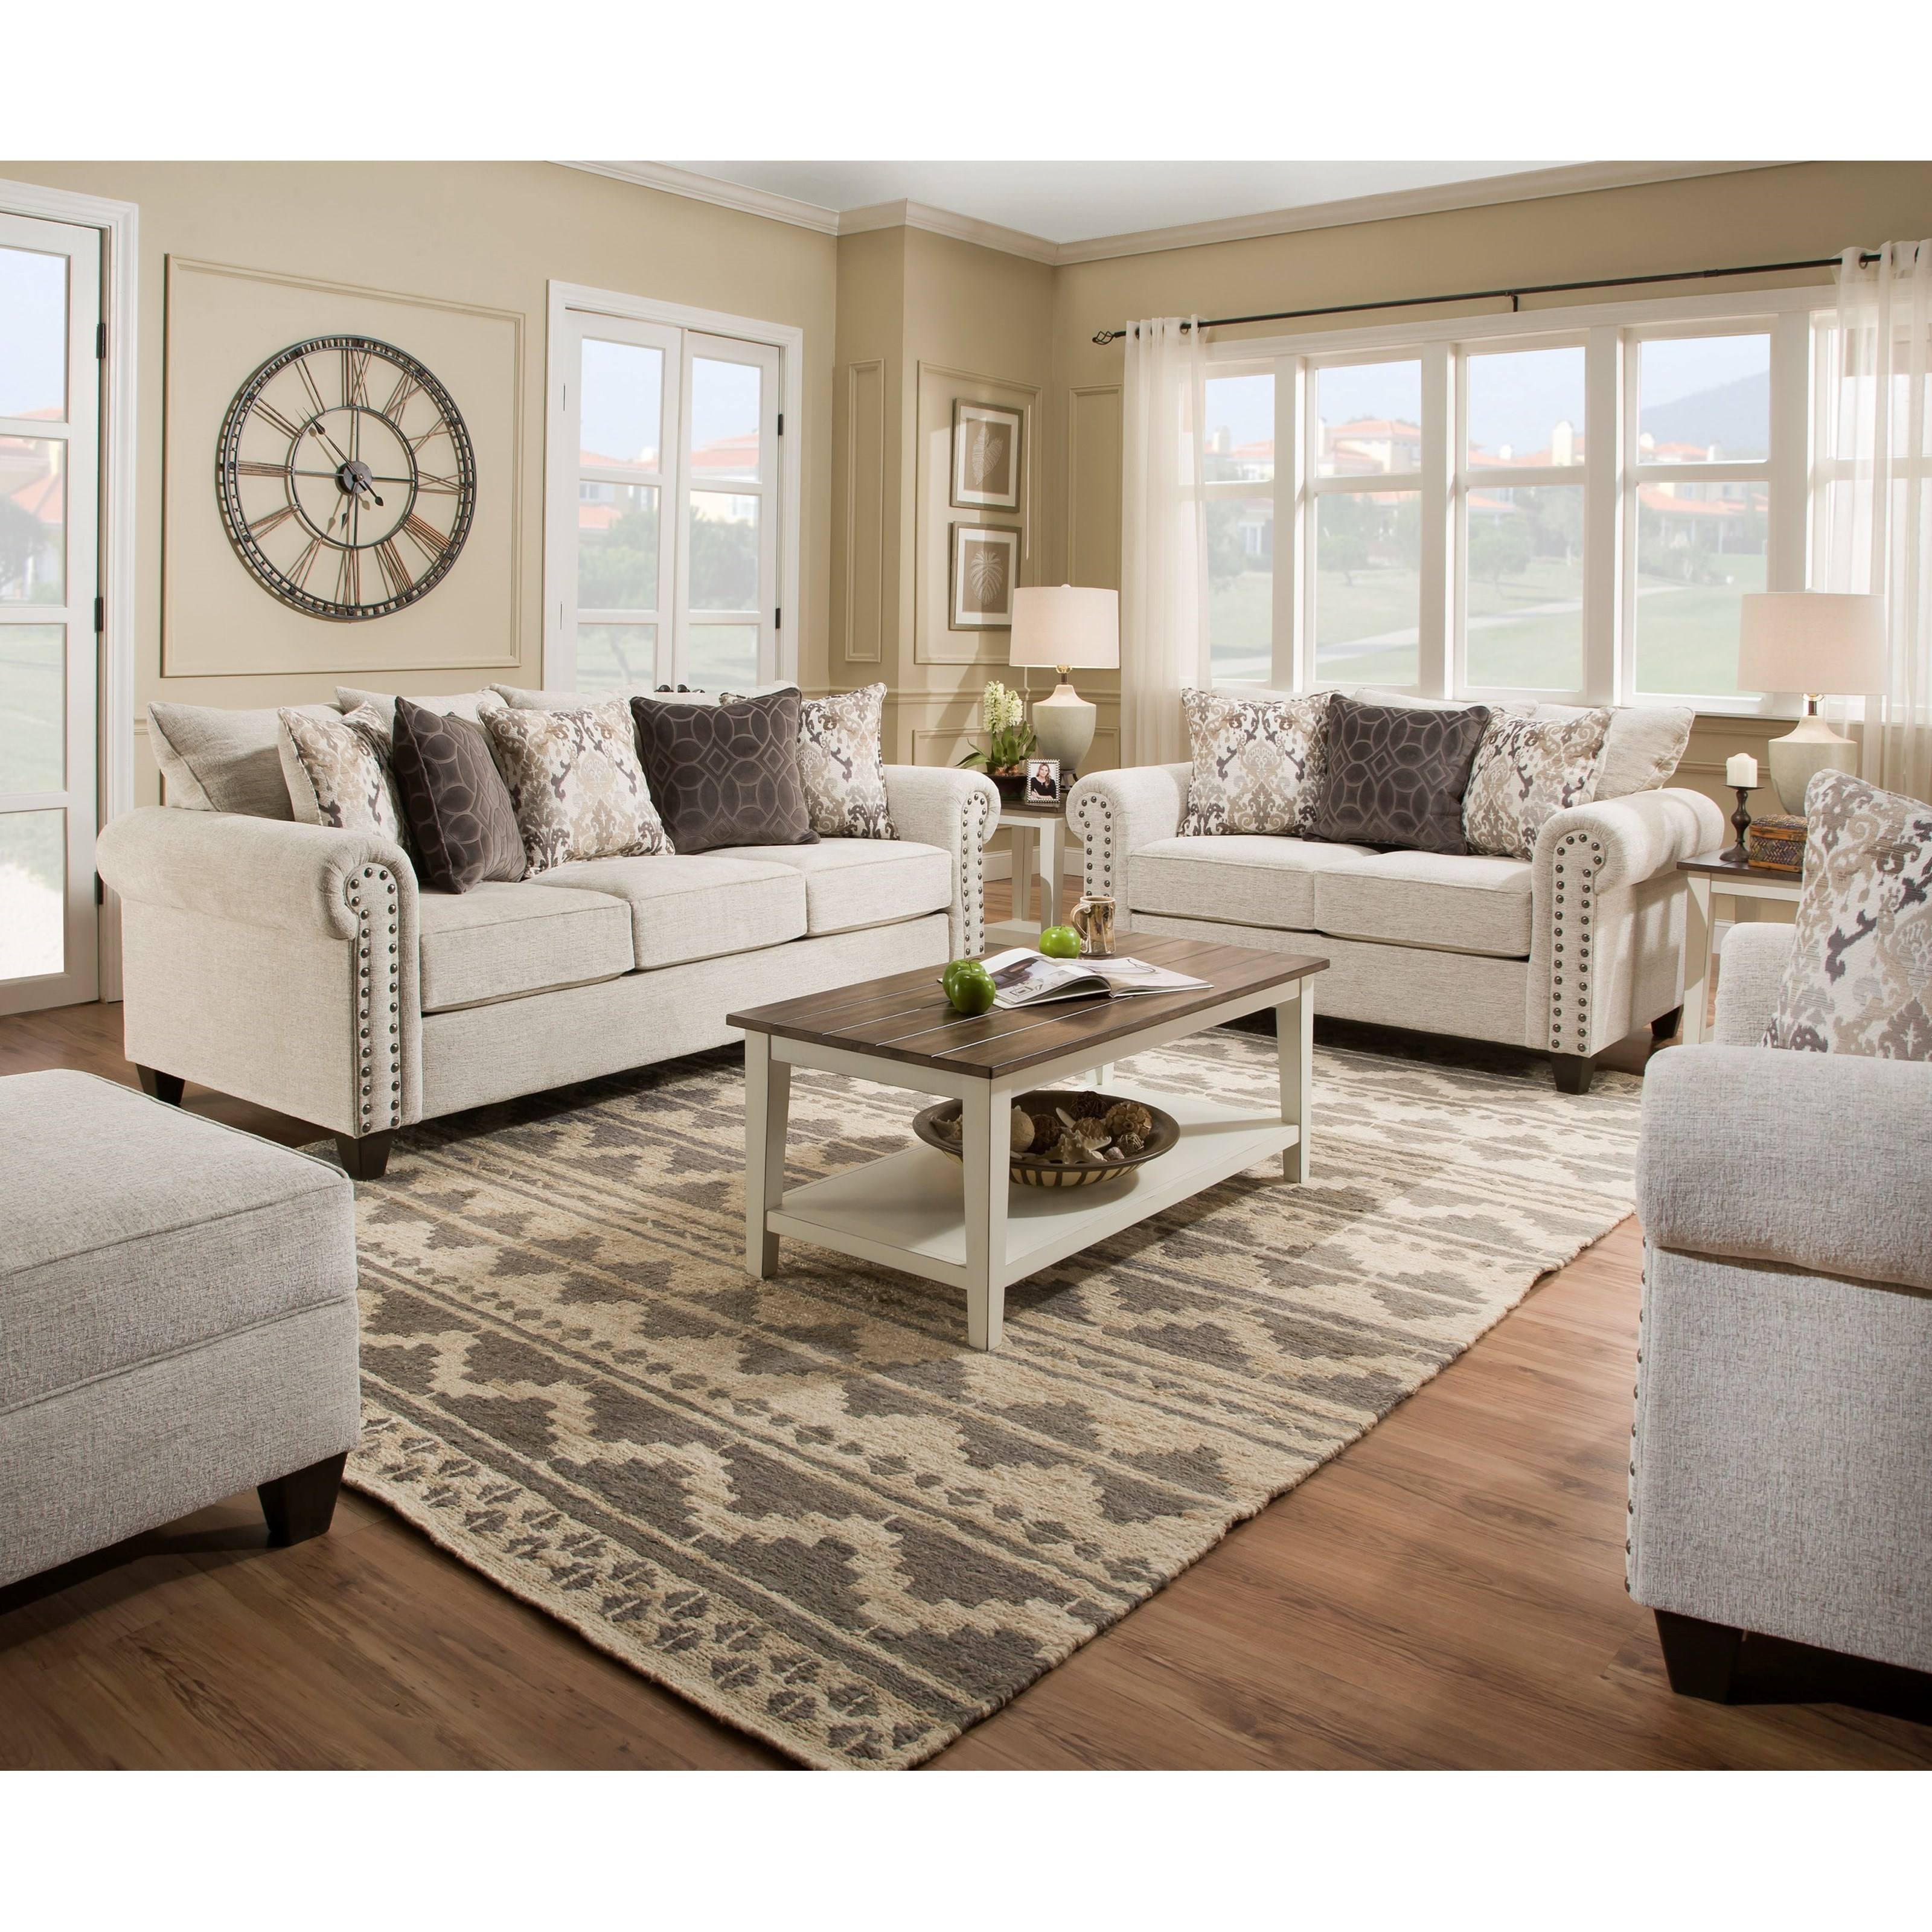 United Furniture Industries 1720 Sofa: United Furniture Industries 9175BR 9175BR-03 Transitional